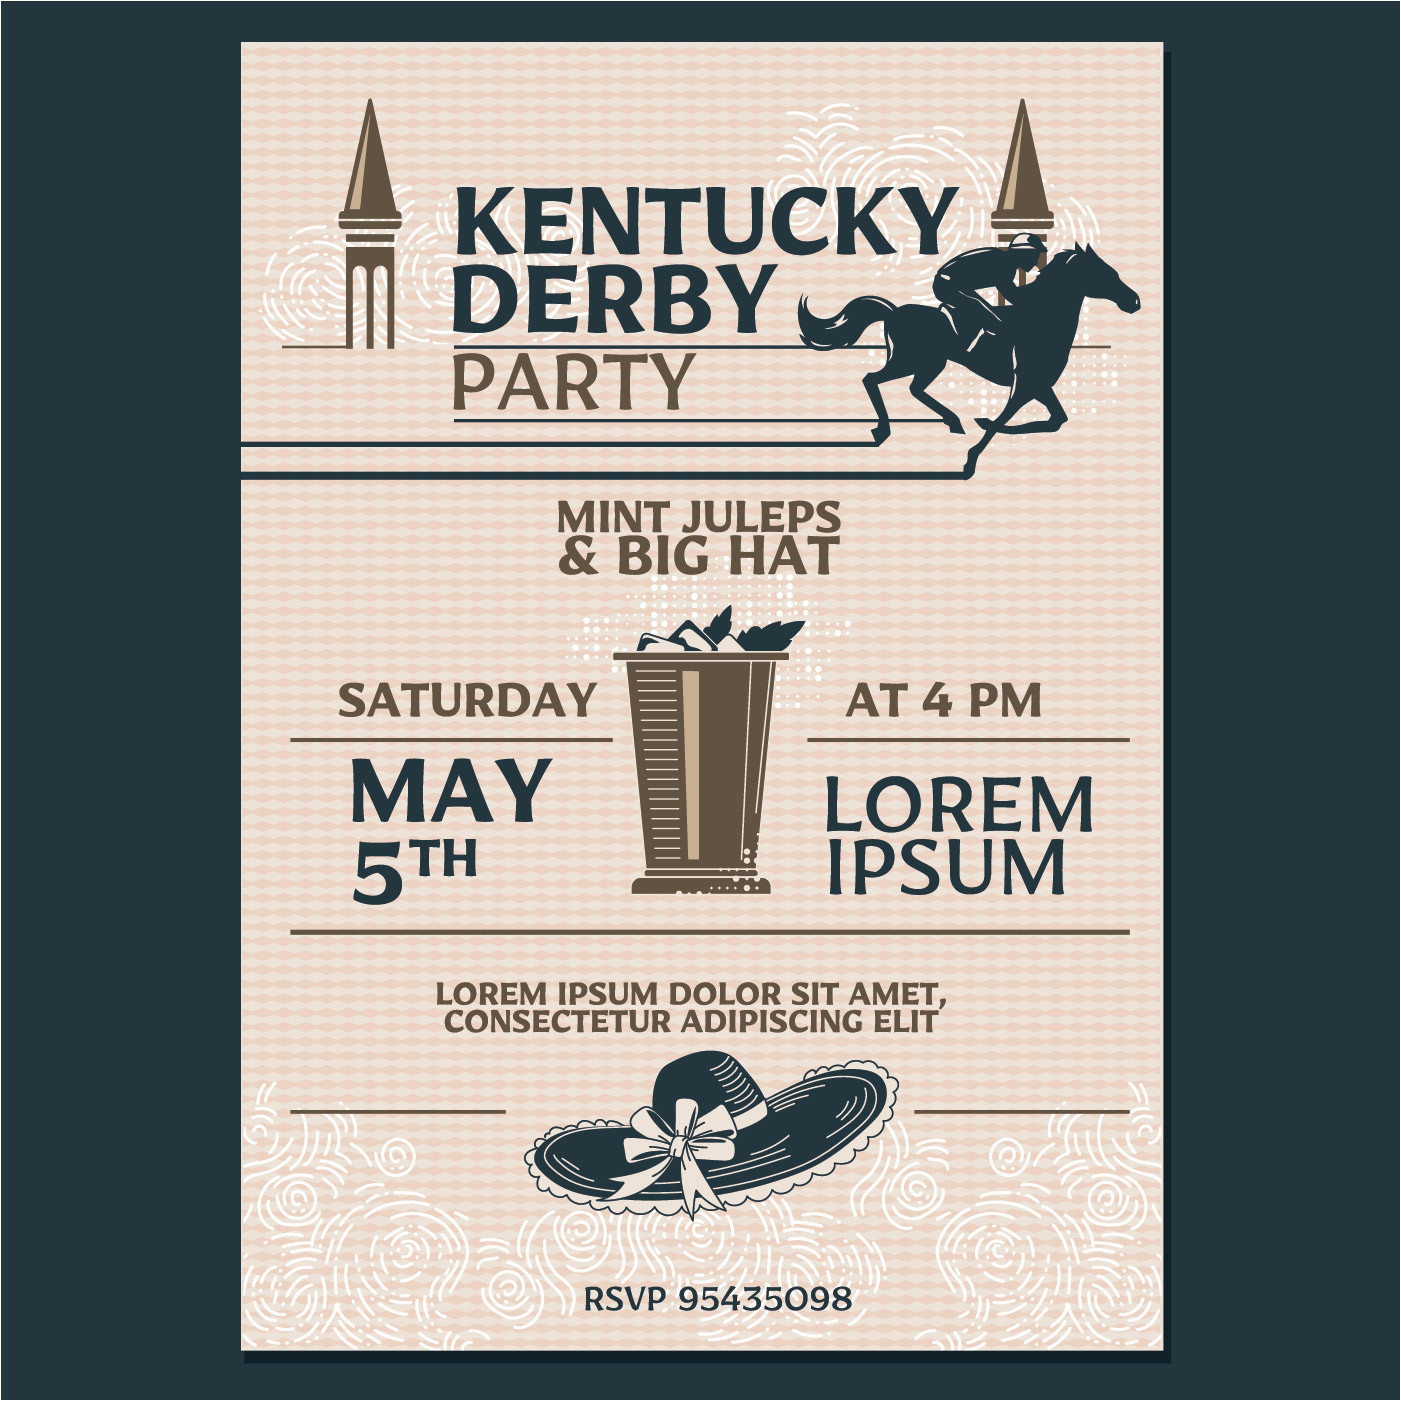 194958 kentucky derby party invitation classic style with geometroc pattern background